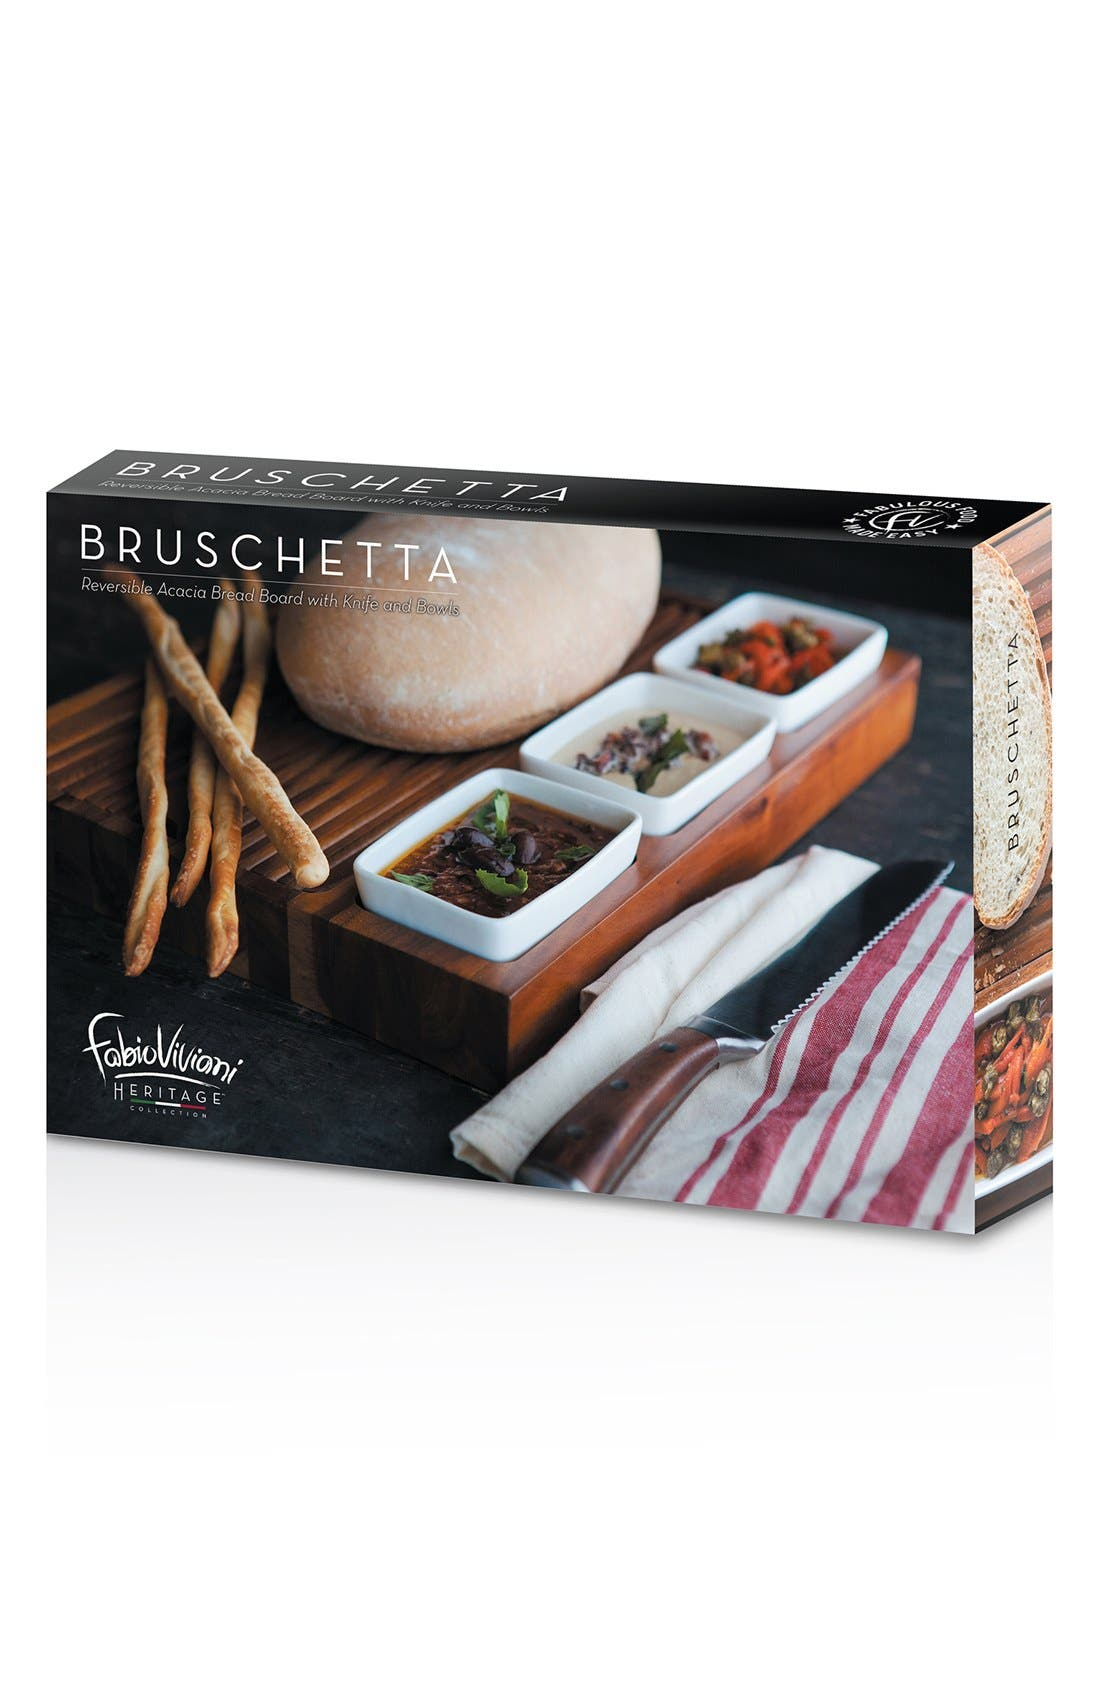 'Legacy Heritage Collection' Bruschetta Cutting Board,                             Alternate thumbnail 5, color,                             200